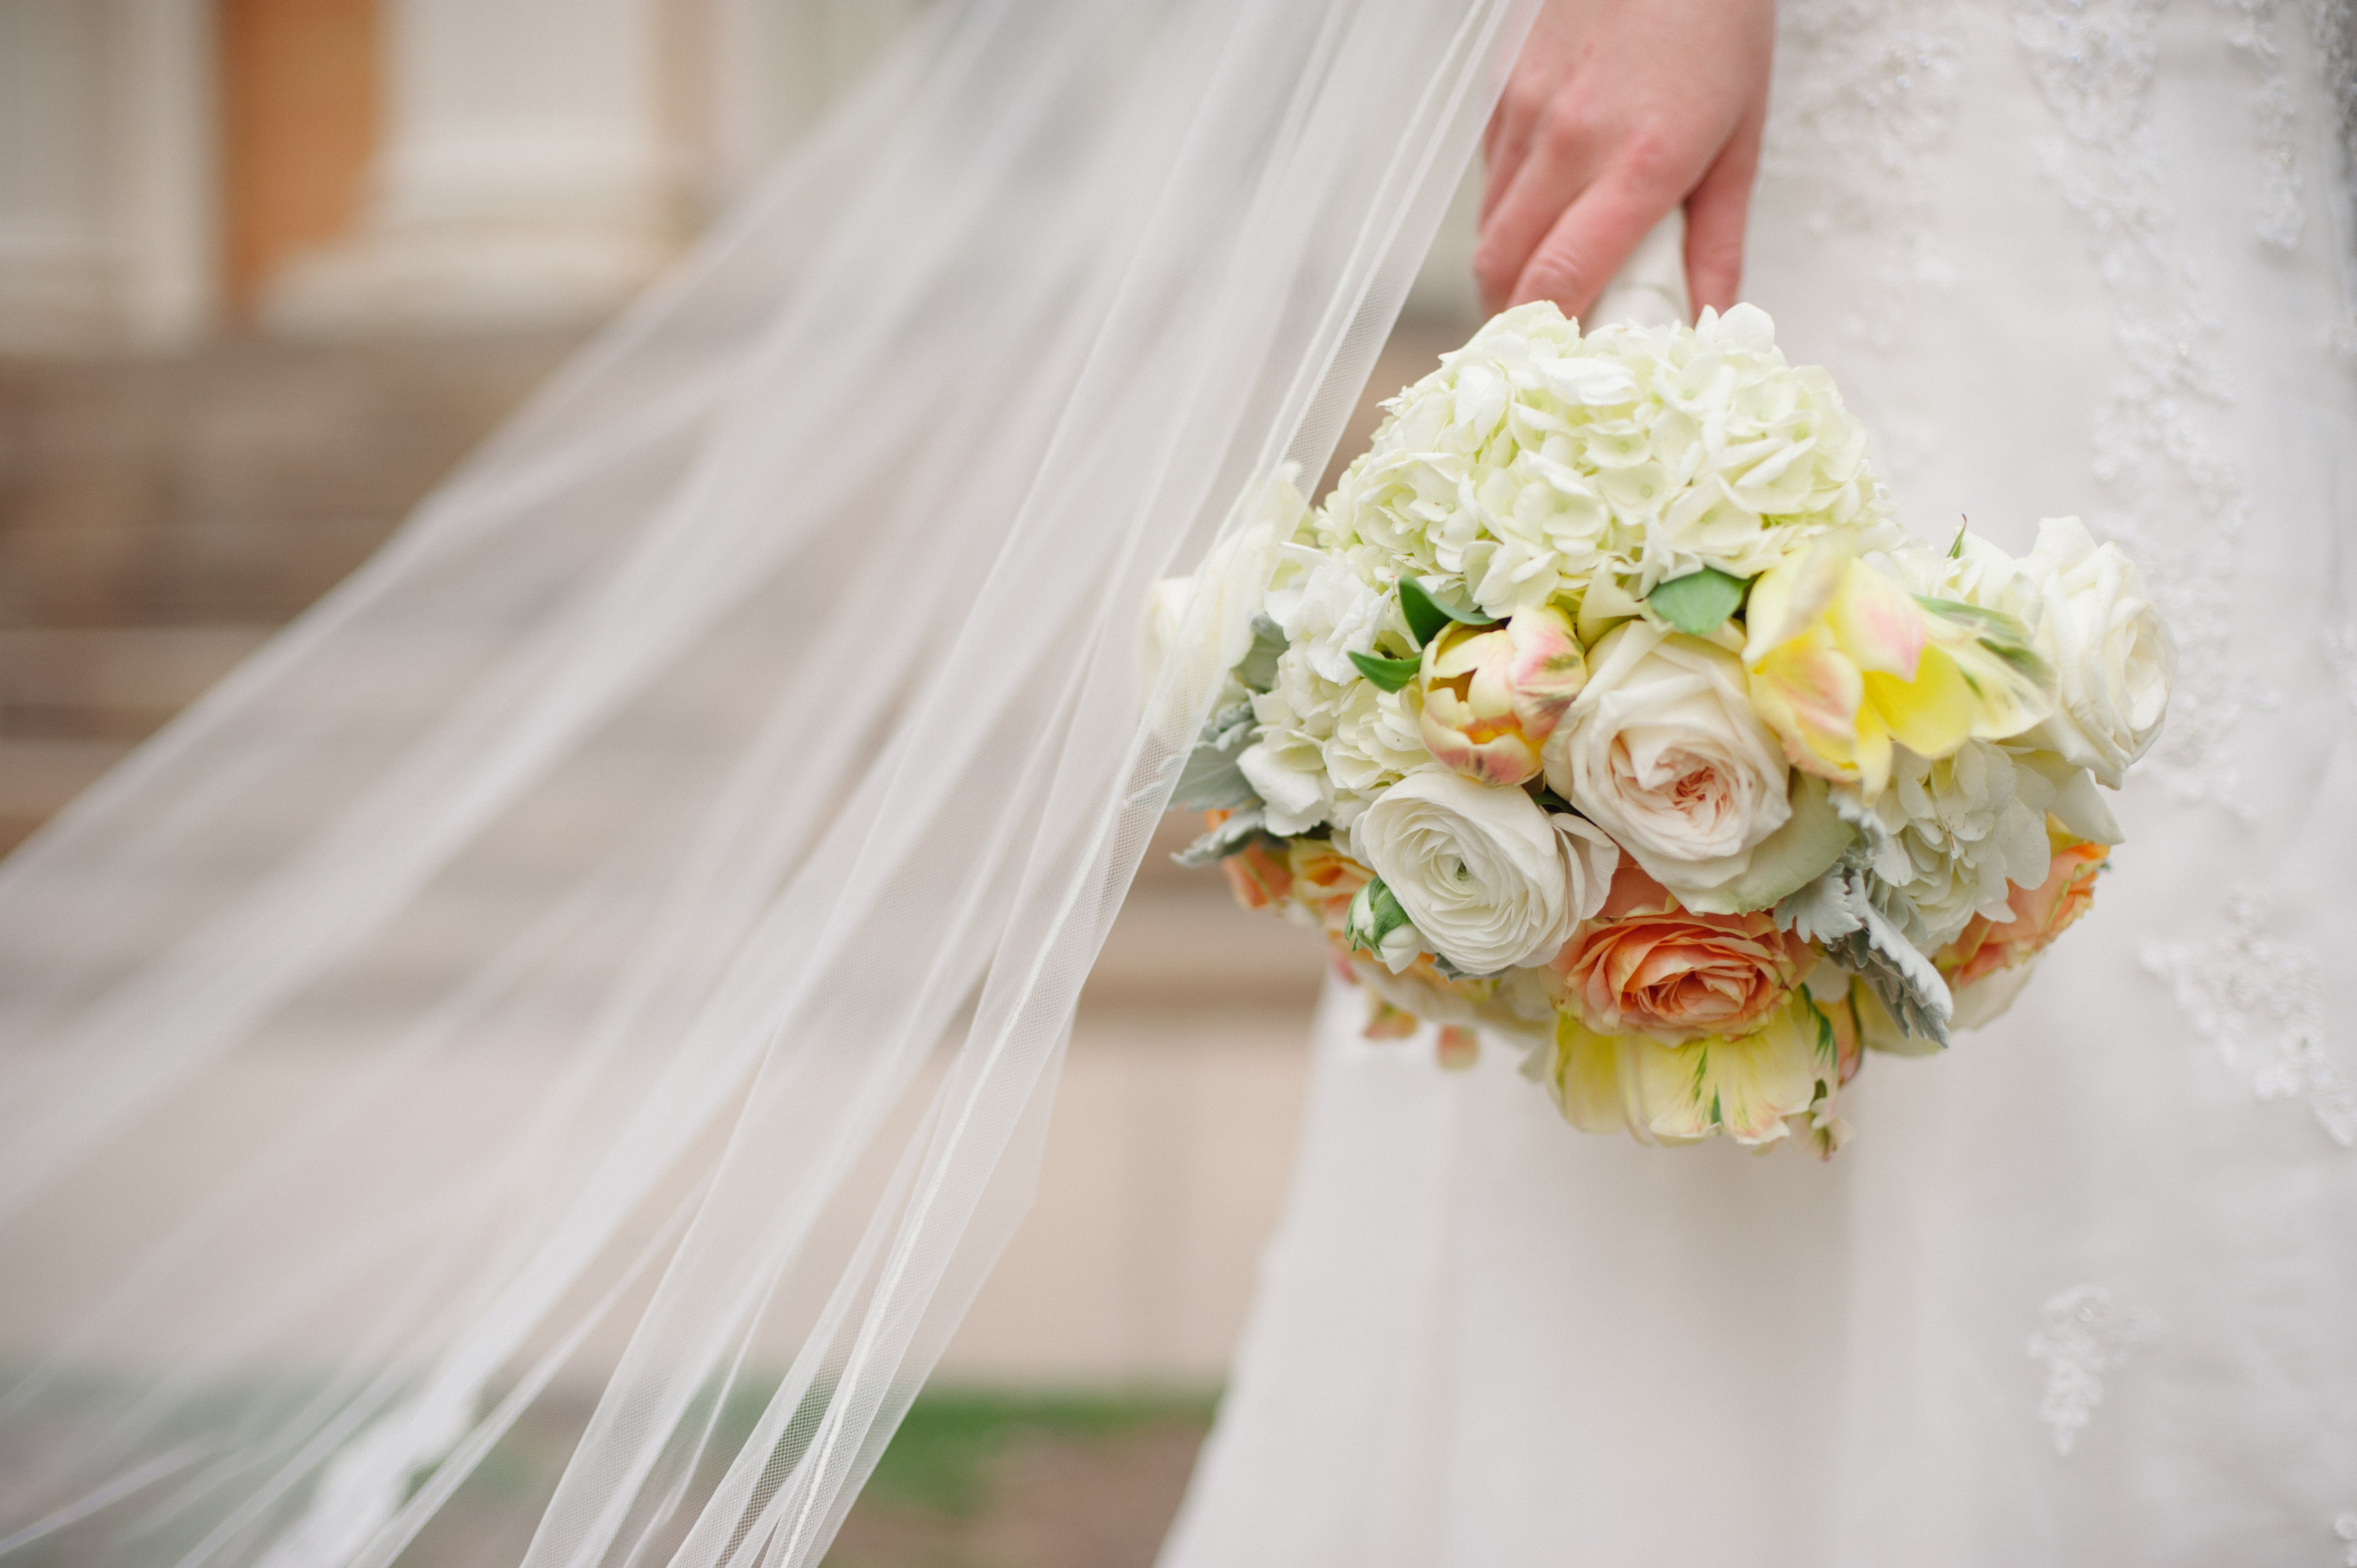 How Long Should Bridal Bouquet Stems Be : A passion for flowers